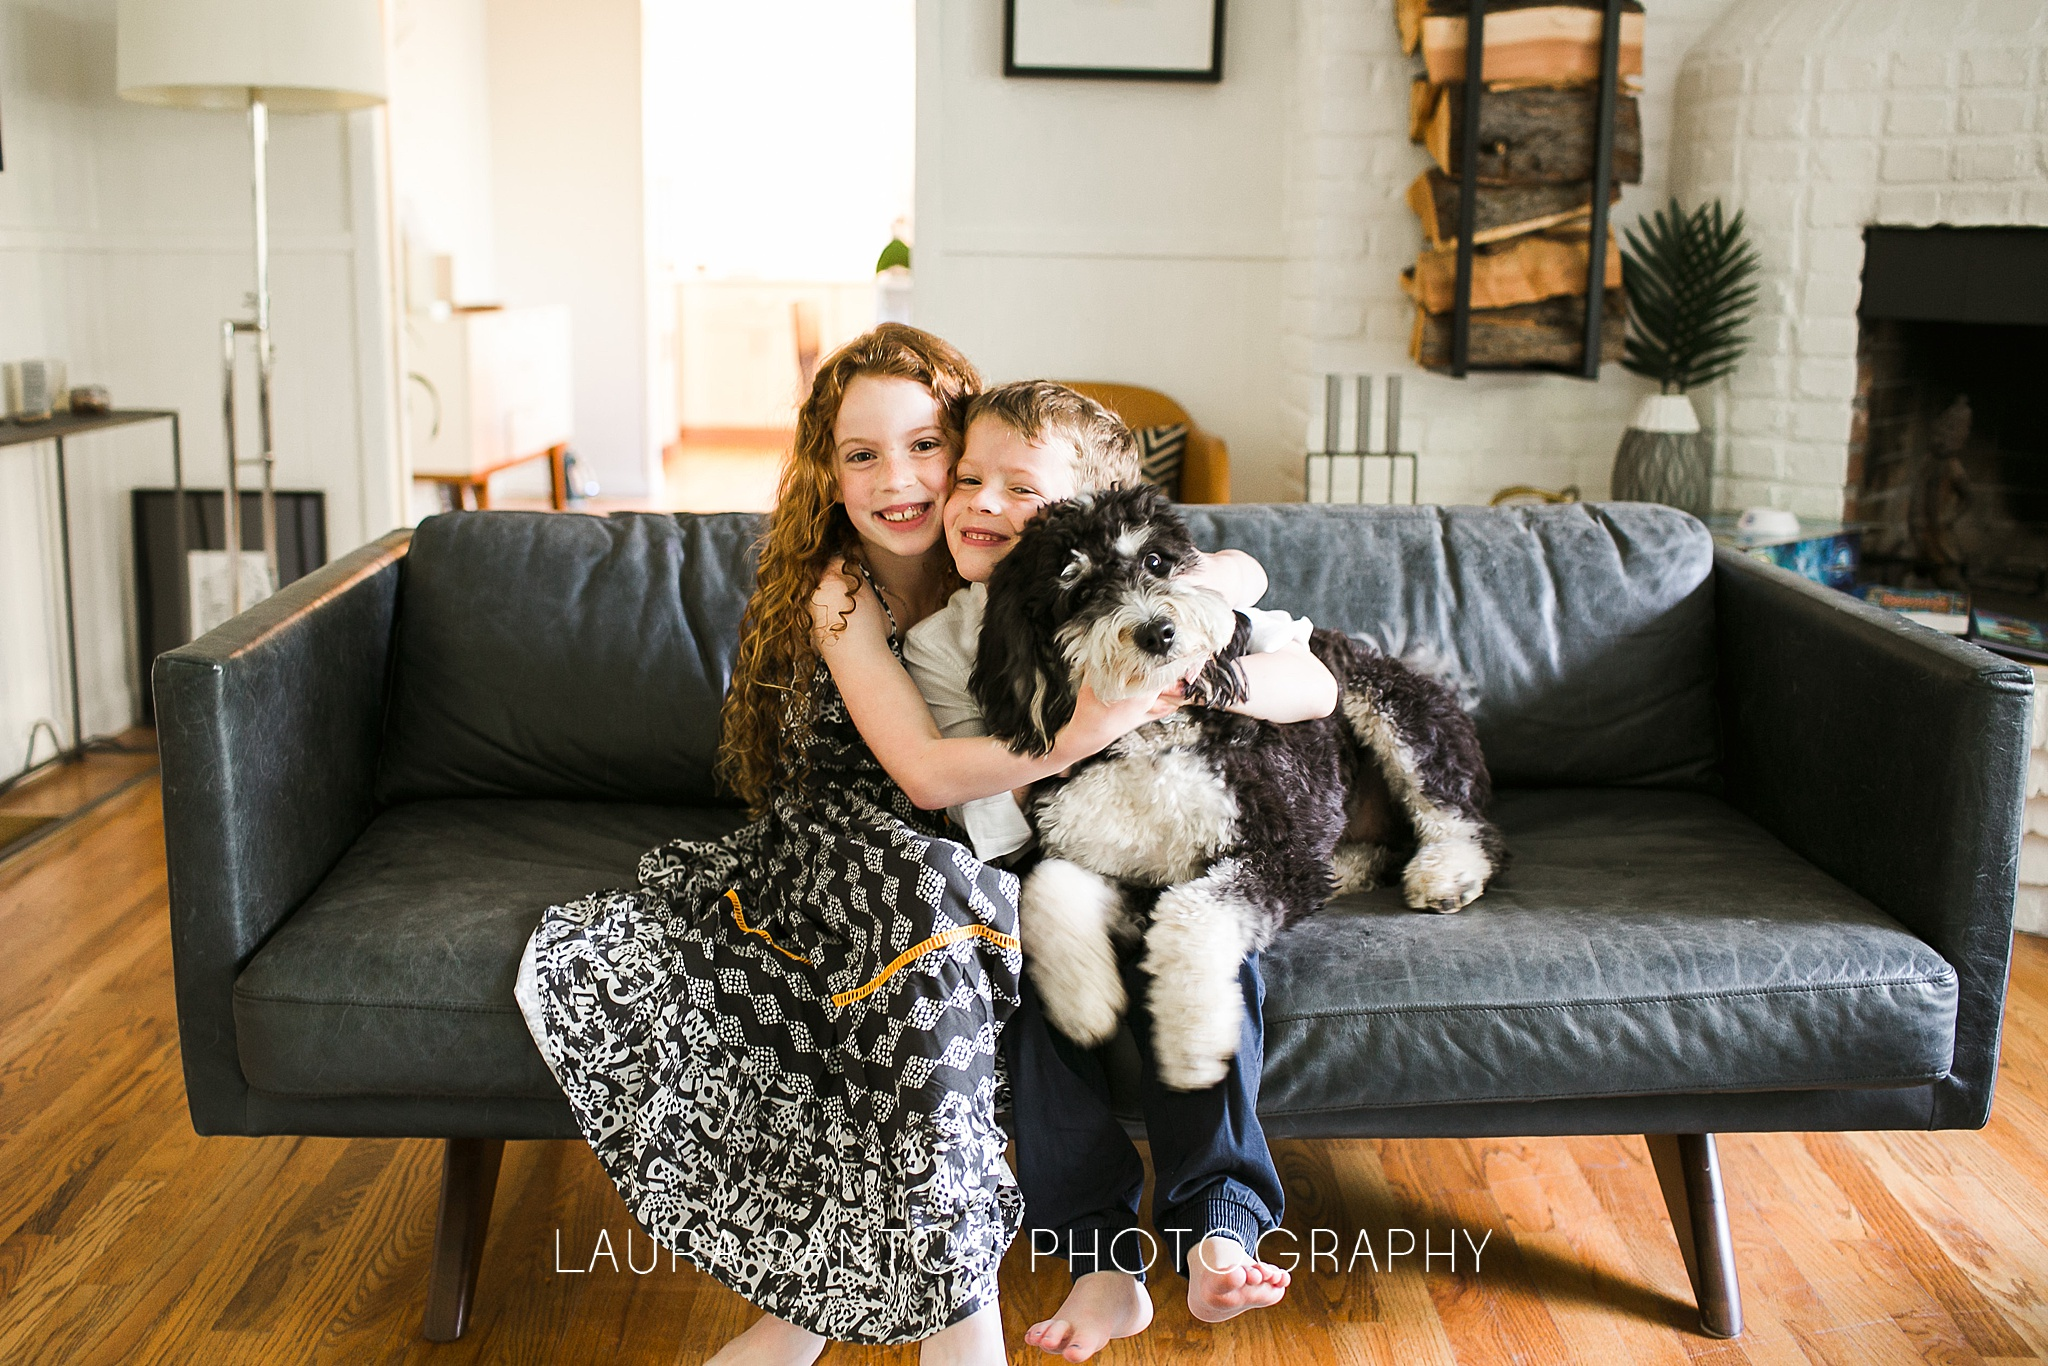 Laura Santos Photography Portland Oregon Family Photographer_0955.jpg